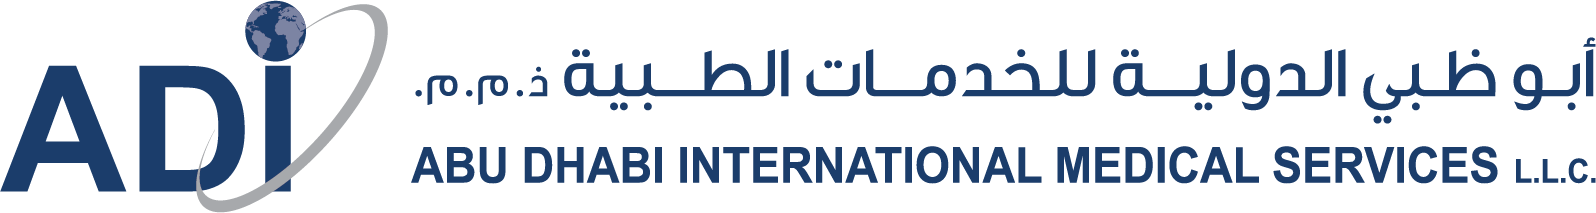 Abu Dhabi International Medical Services